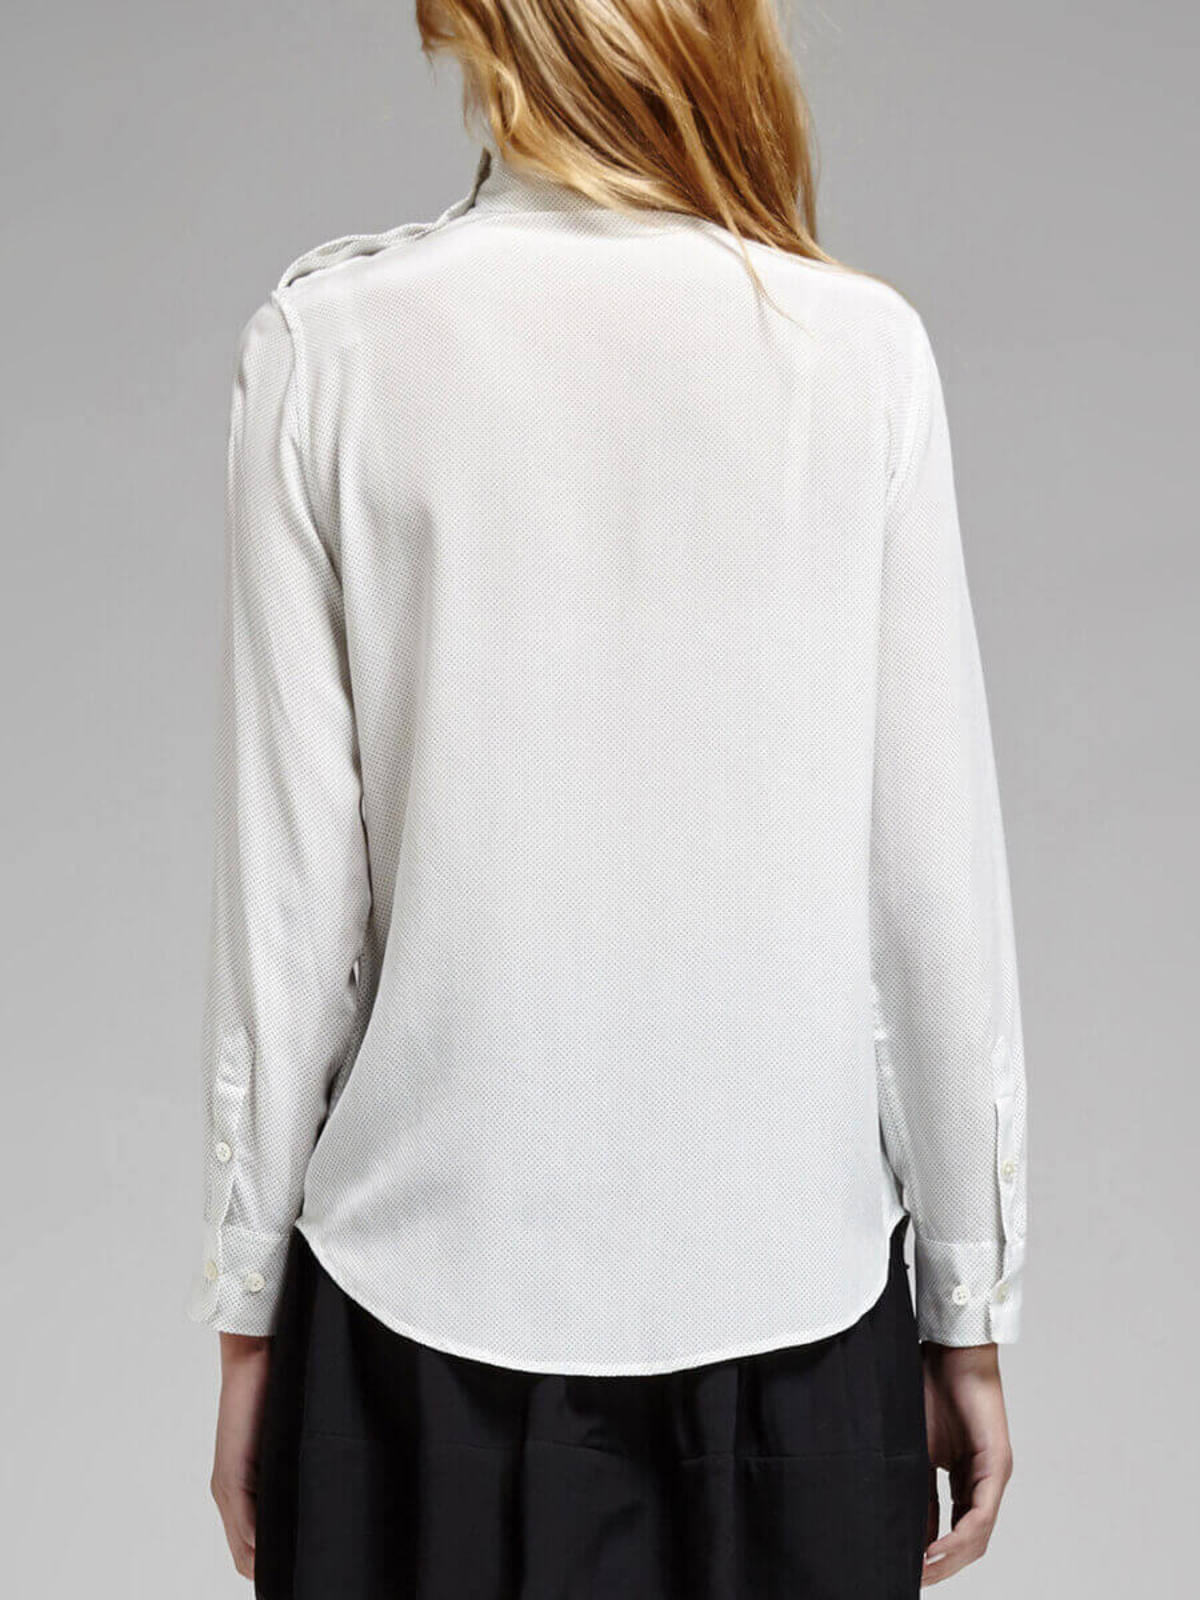 344f33a737f43 Equipment Curtis Mock Neck Top